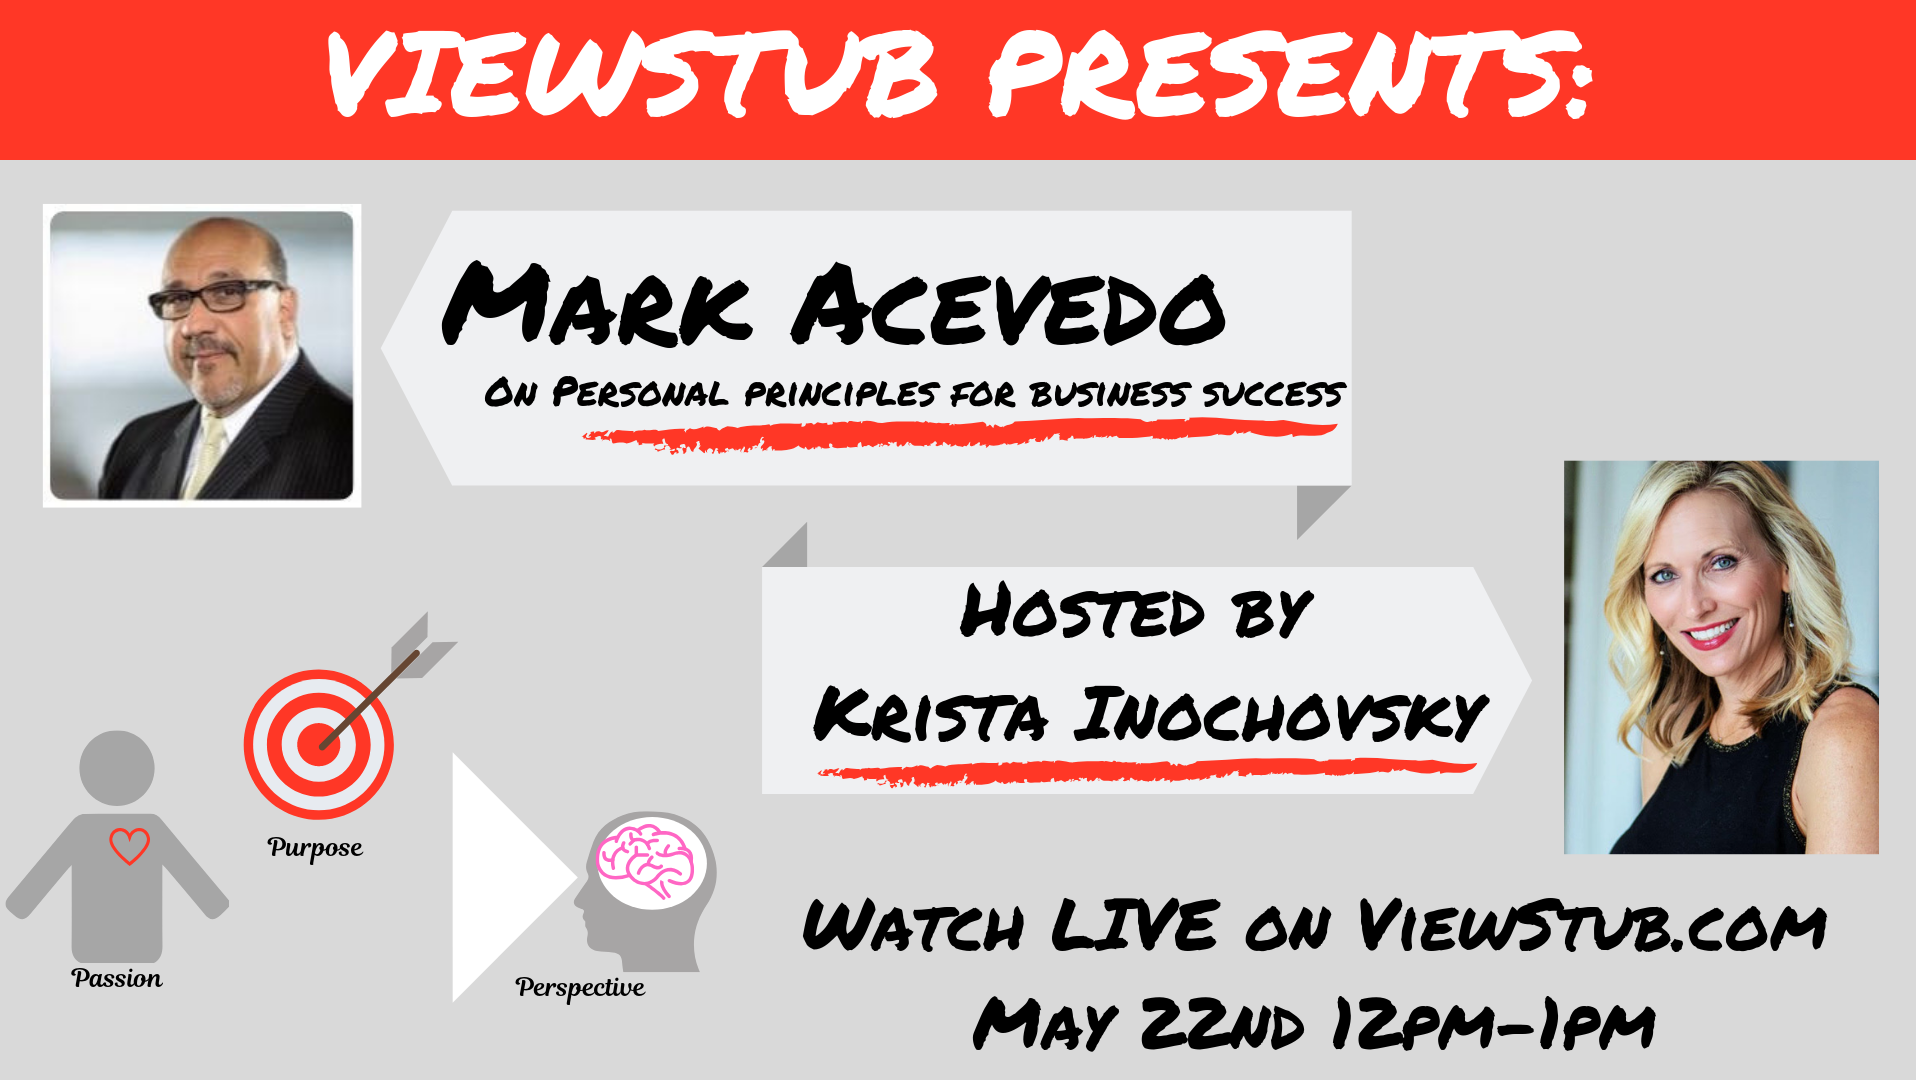 Photo for ViewStub Presents Mark Acevedo on Personal Principles for Business Success on ViewStub